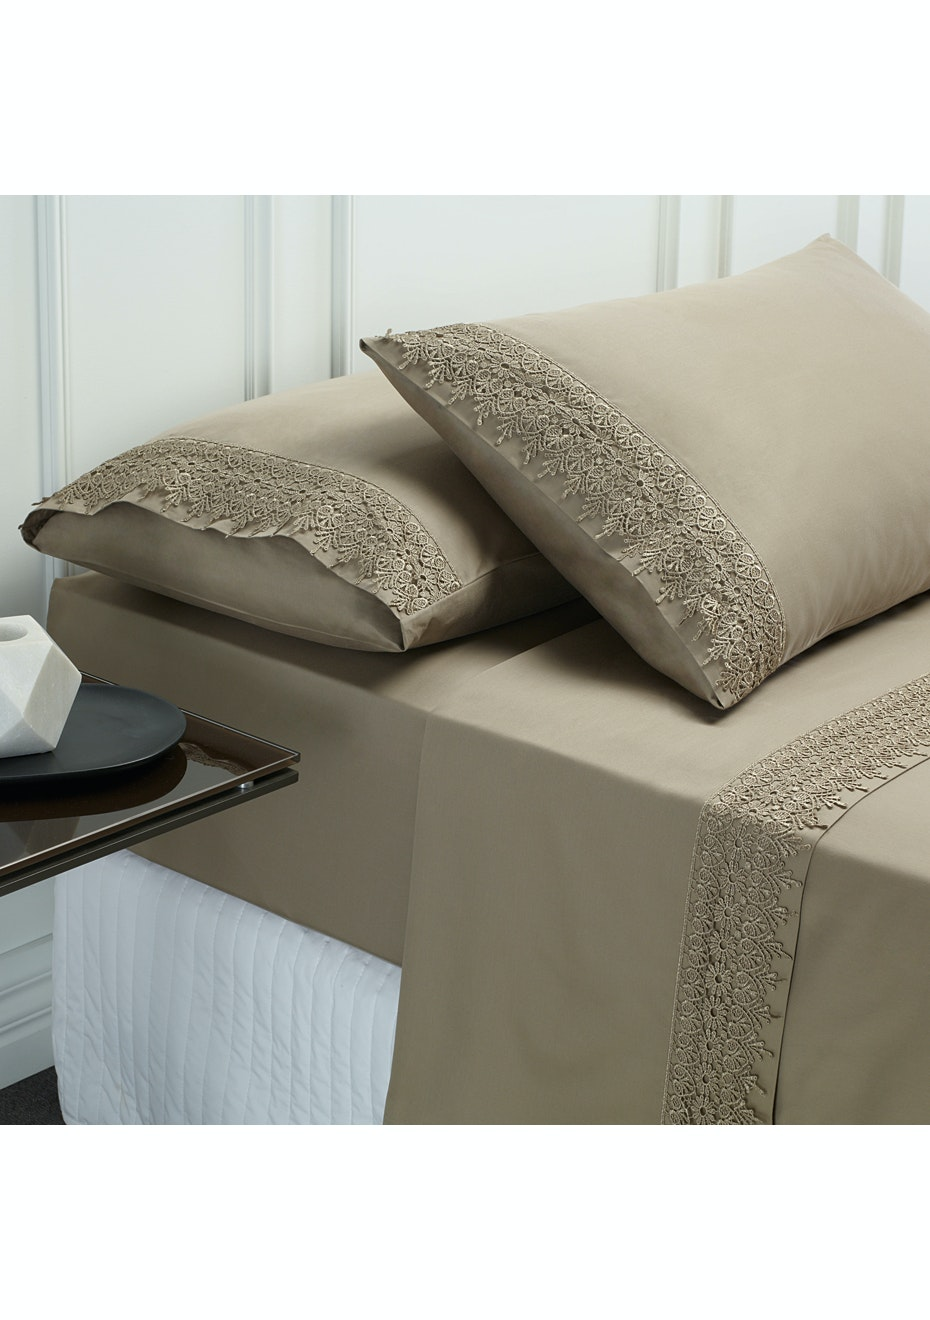 Style & Co 1000 Thread count Egyptian Cotton Hotel Collection Valencia Sheet sets King Linen